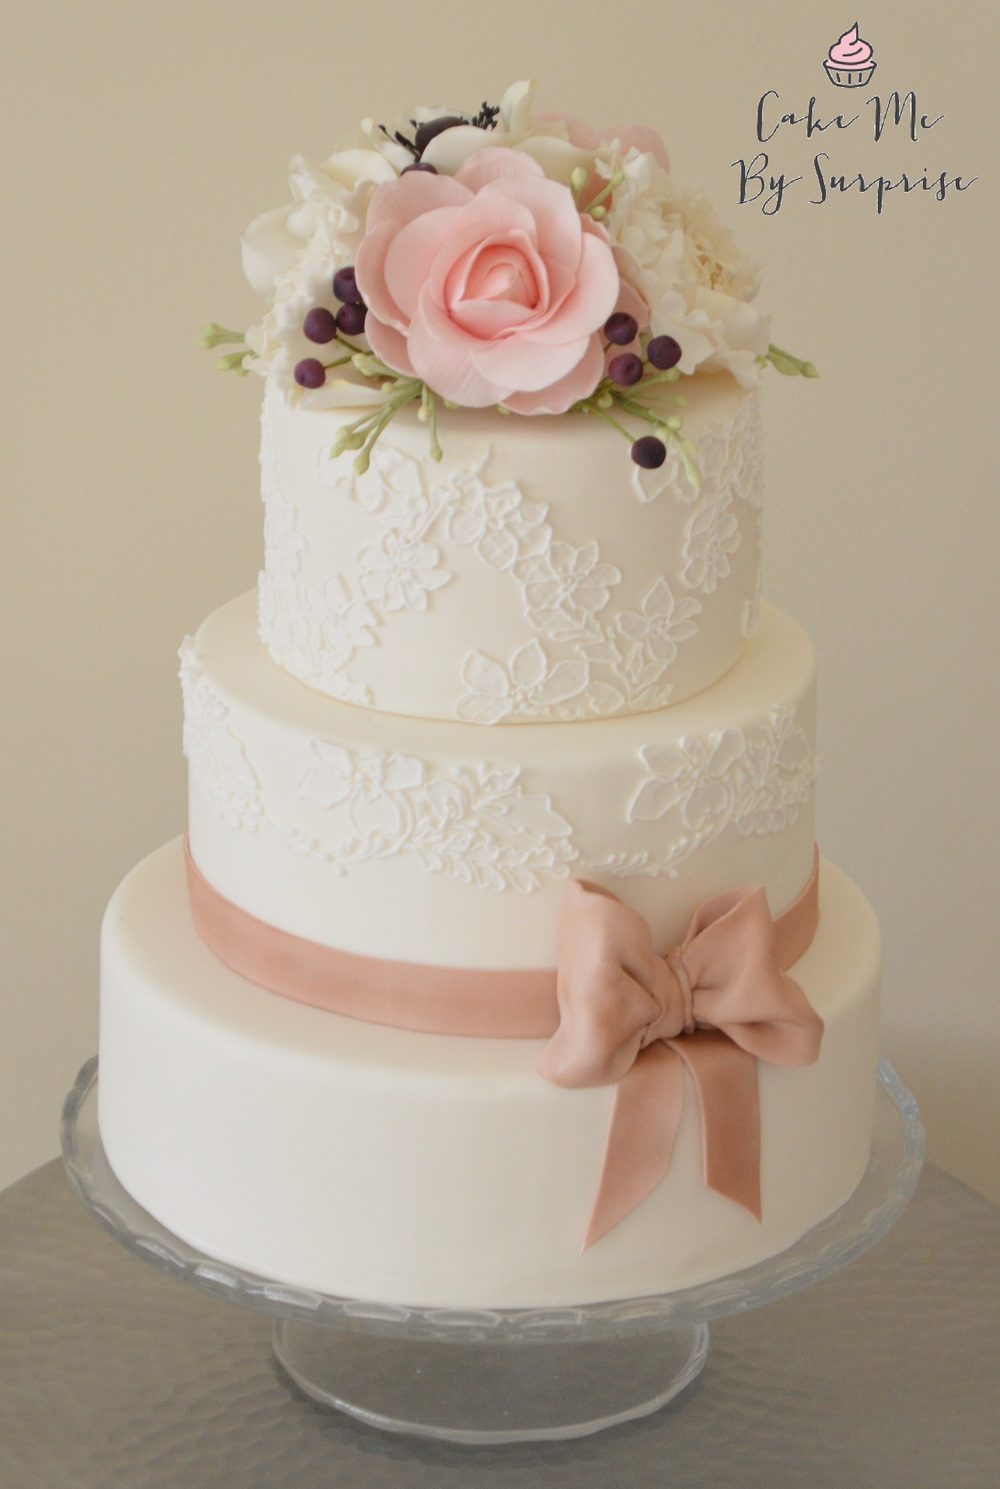 A Touch of Mink Complete your wedding celebration with this elegant cake. With its name derived from the mink colored satin ribbon that finishes this lace inspired cake. The top of the cake is finished with sugar crafted Camellias, Peonies, Anemones, Berries and Foliage.  Serves 60 £390